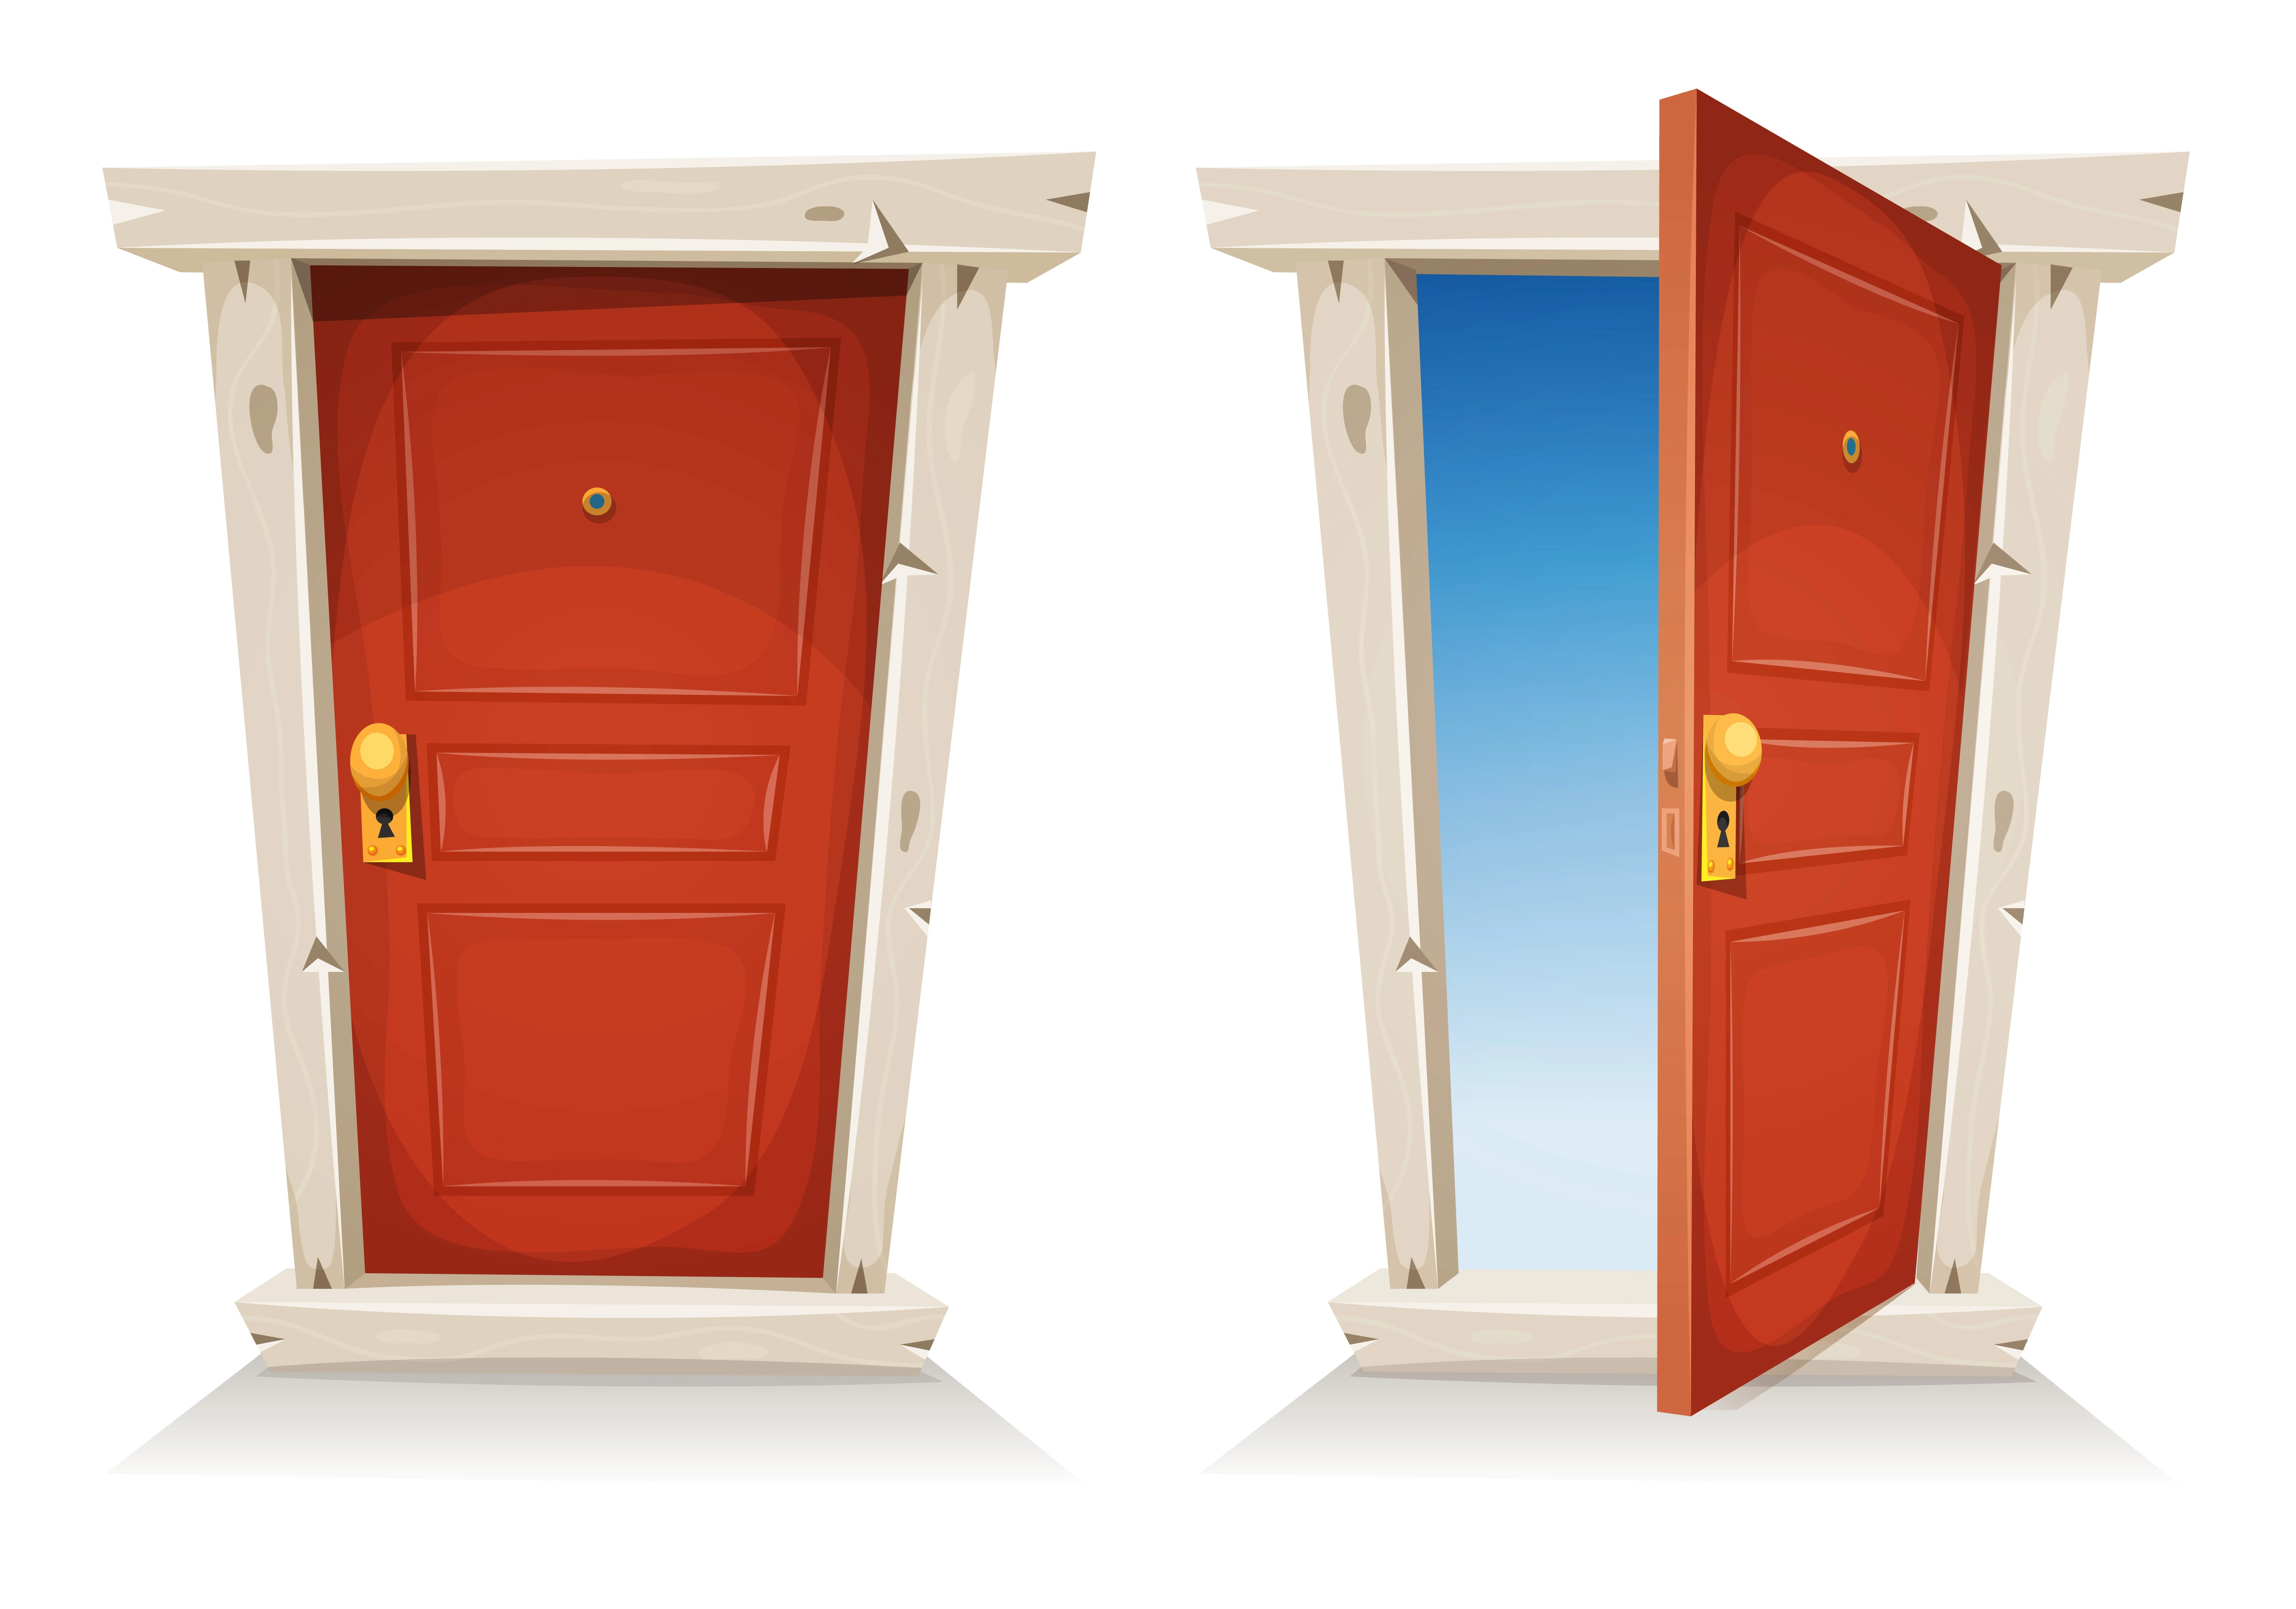 Le Meilleur Red Door Open And Closed Download Free Vector Art Stock Ce Mois Ci